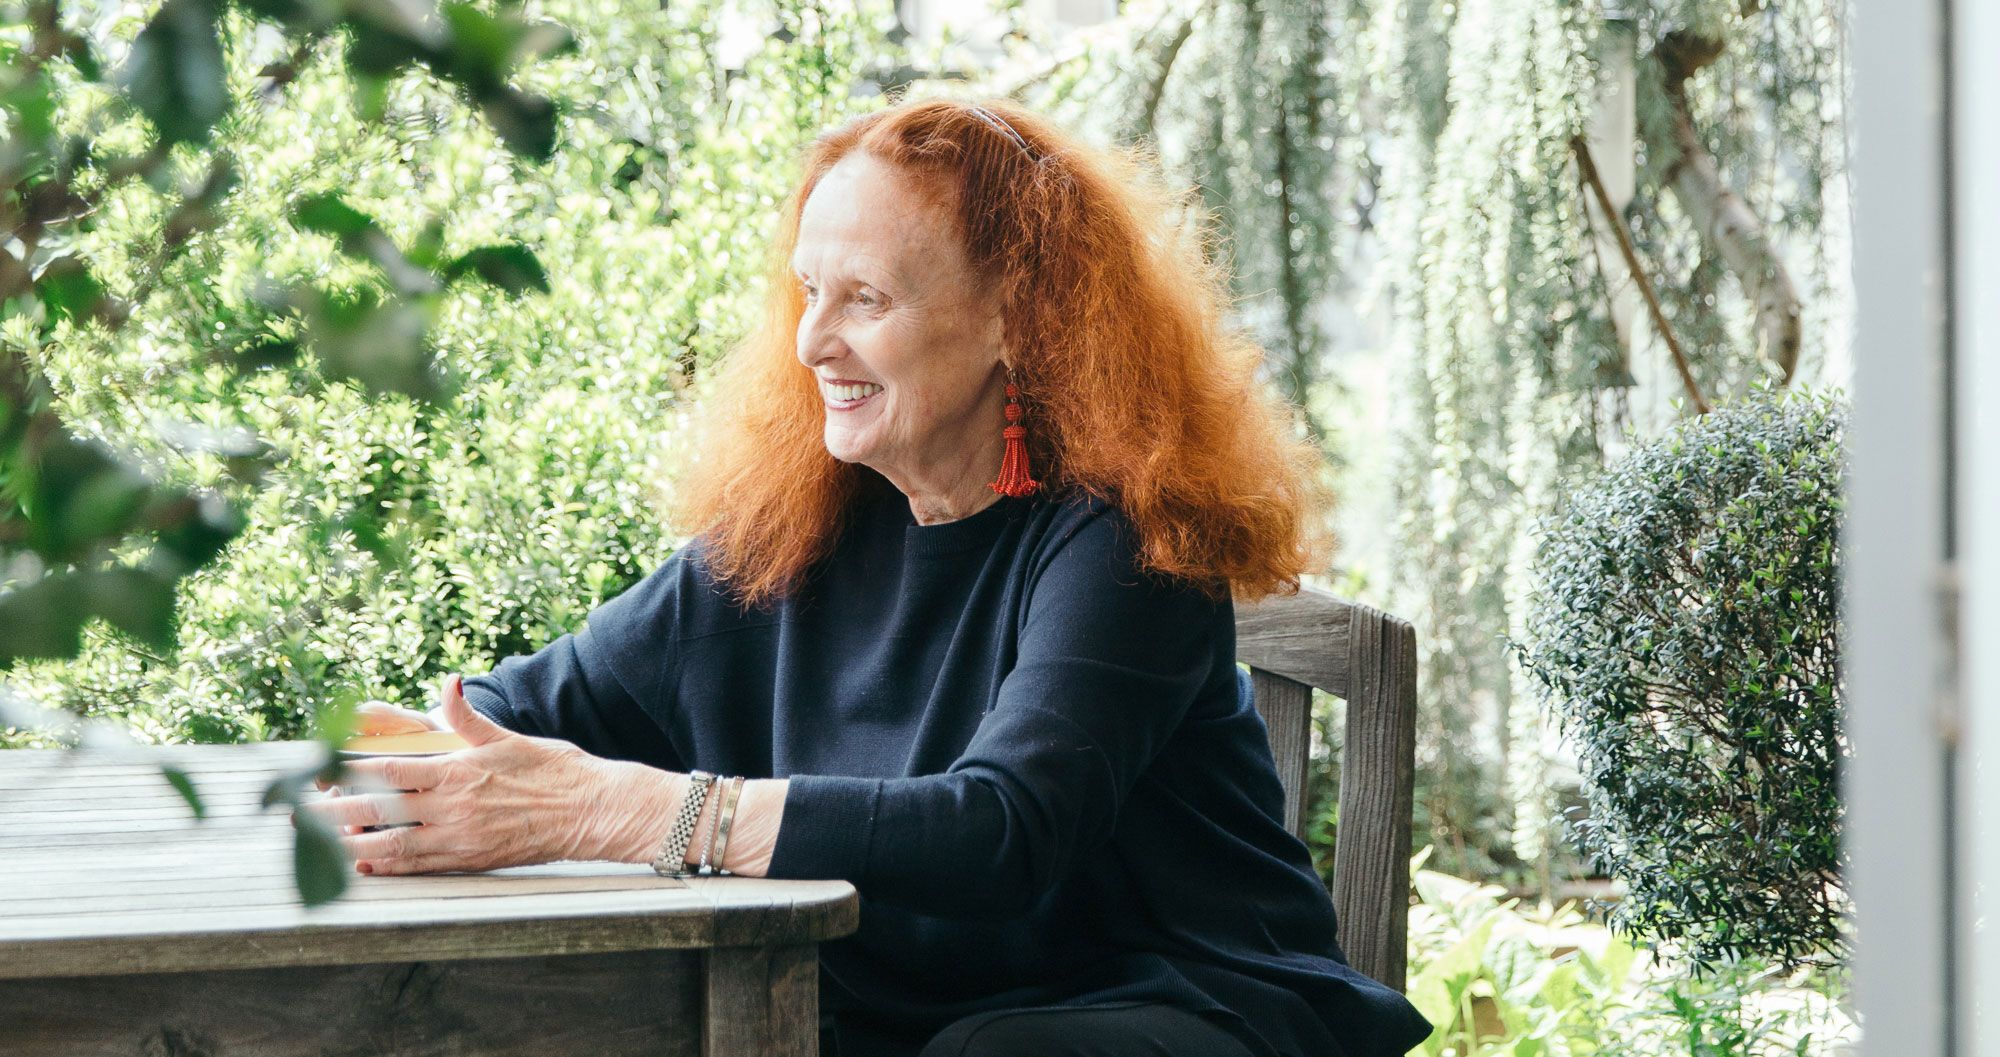 Grace Coddington on Social Media and What She Looks for in An Assistant